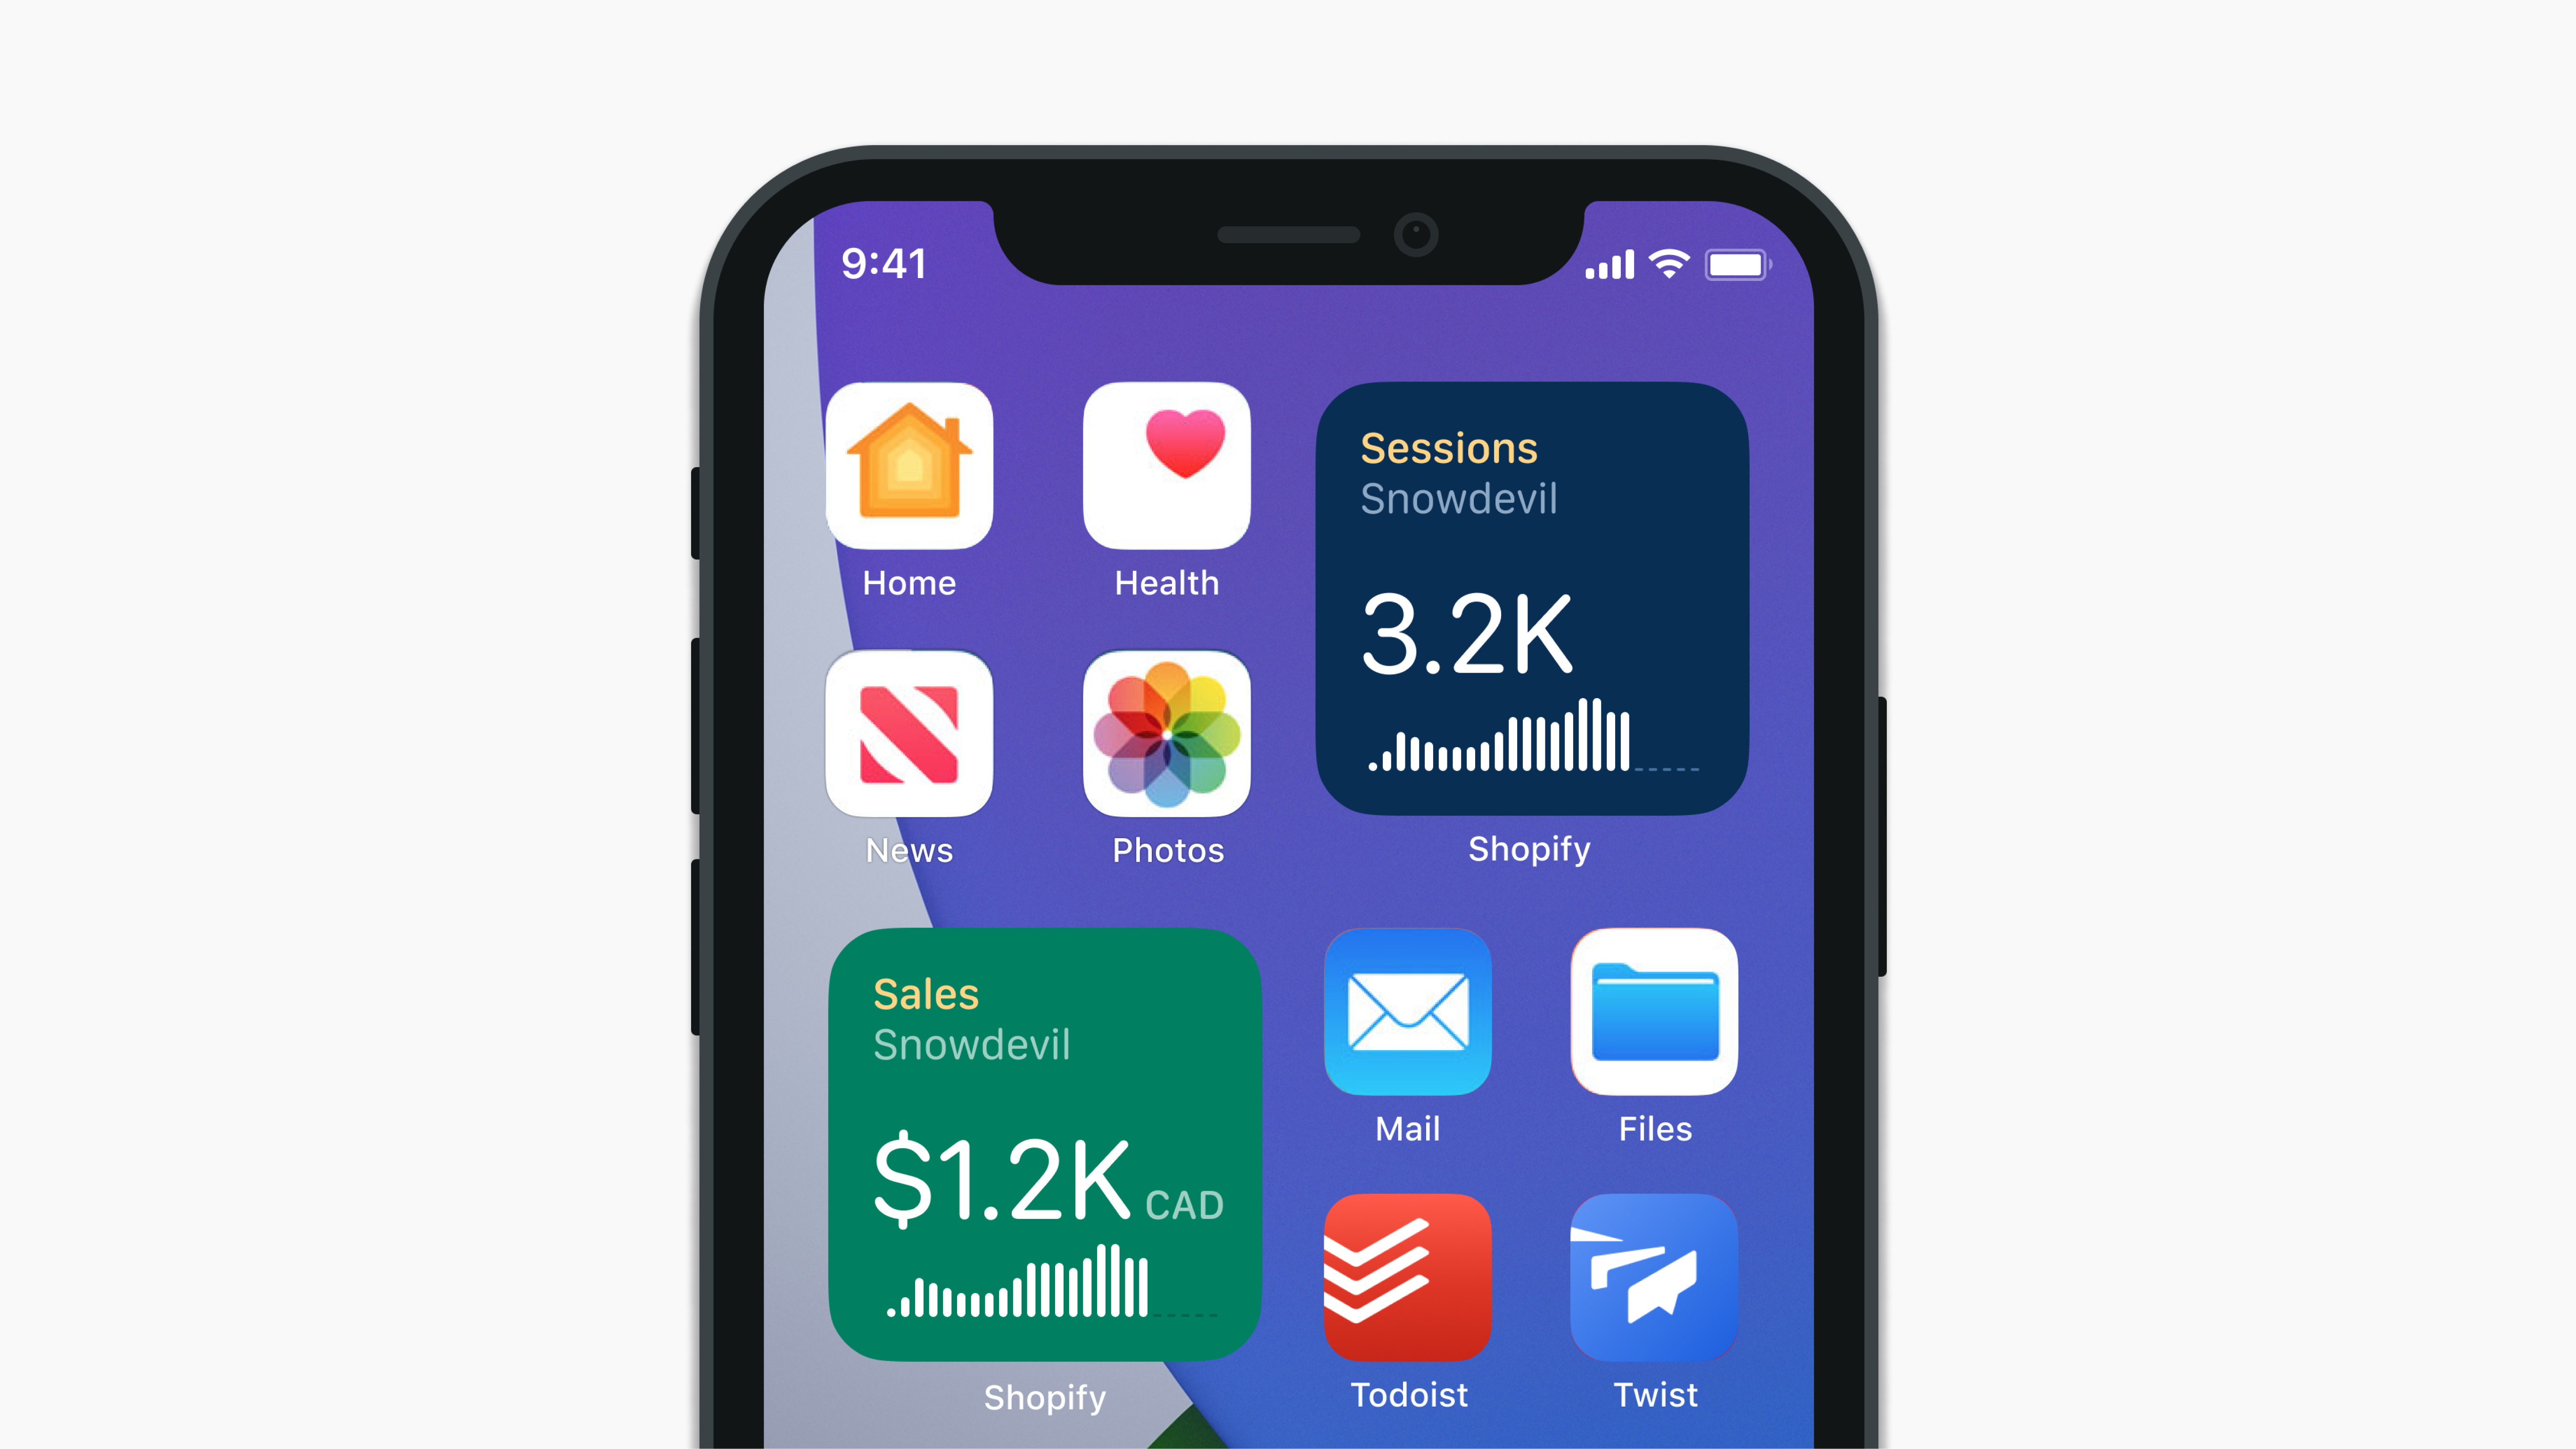 Mockup of final widget designs on the iOS home screen